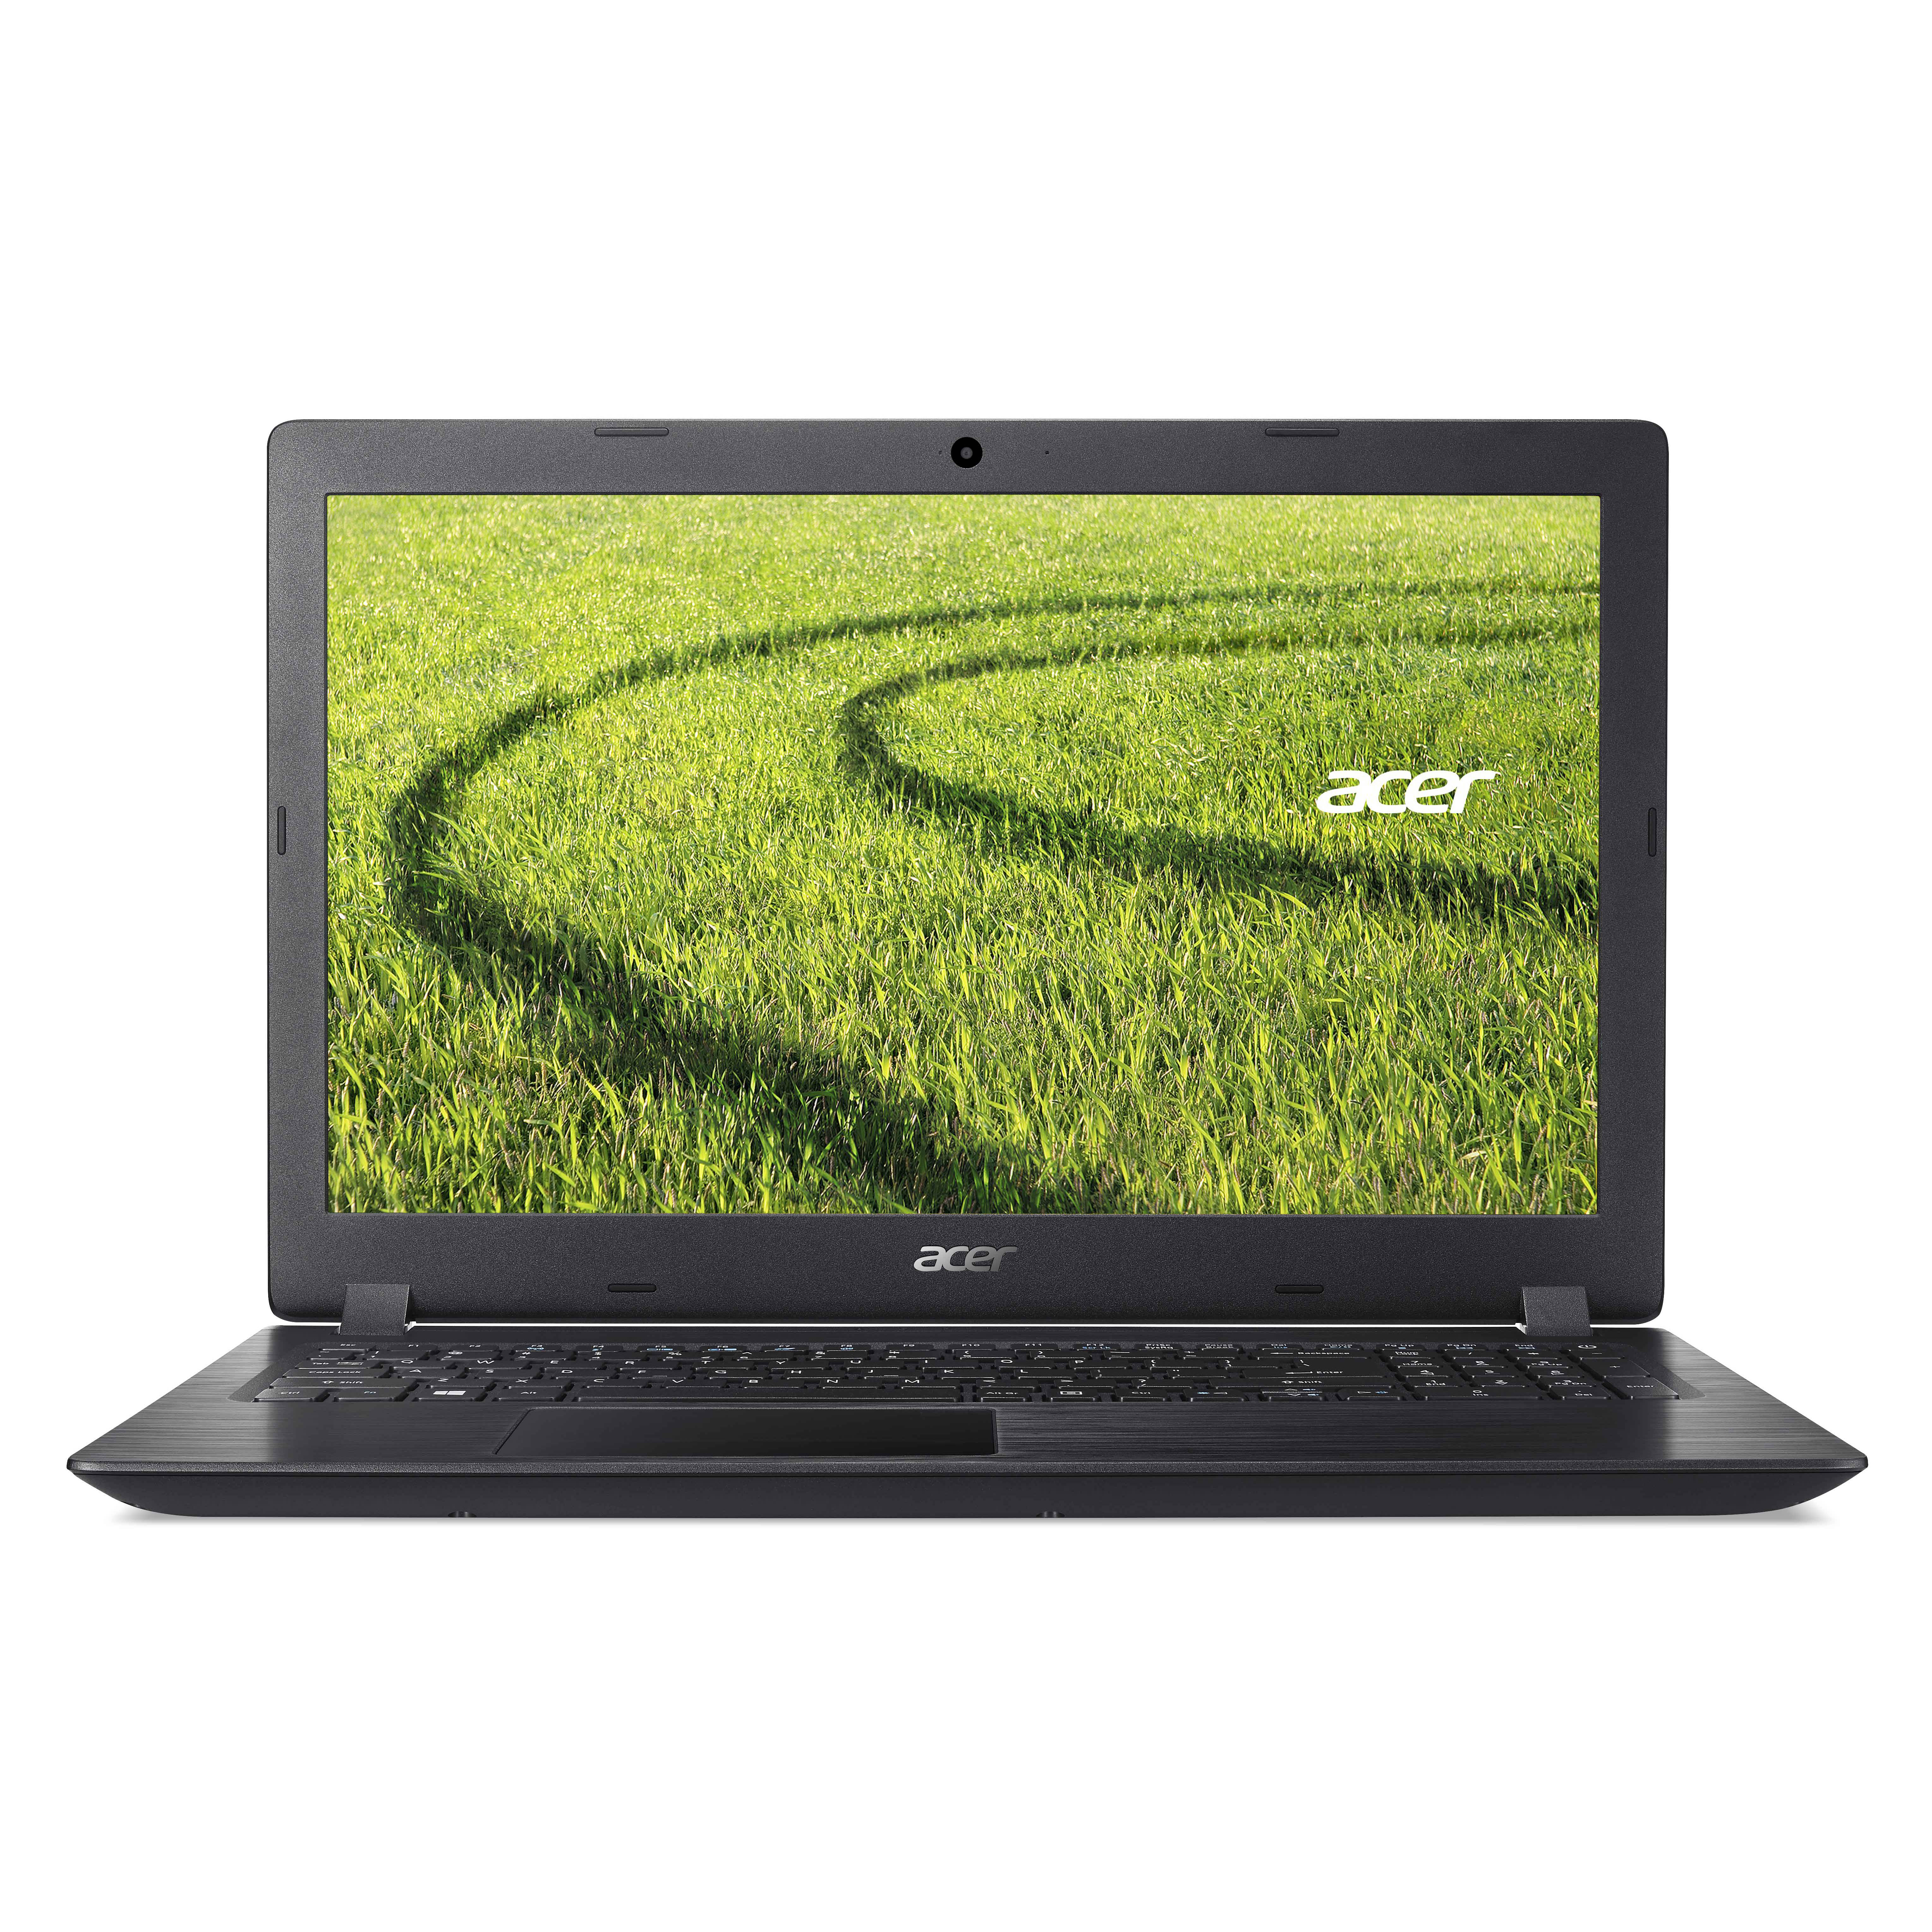 "Acer 15.6"" Aspire 3 Laptop AMD 3 GHz 6 GB Ram 1TB HDD Windows 10 Home 